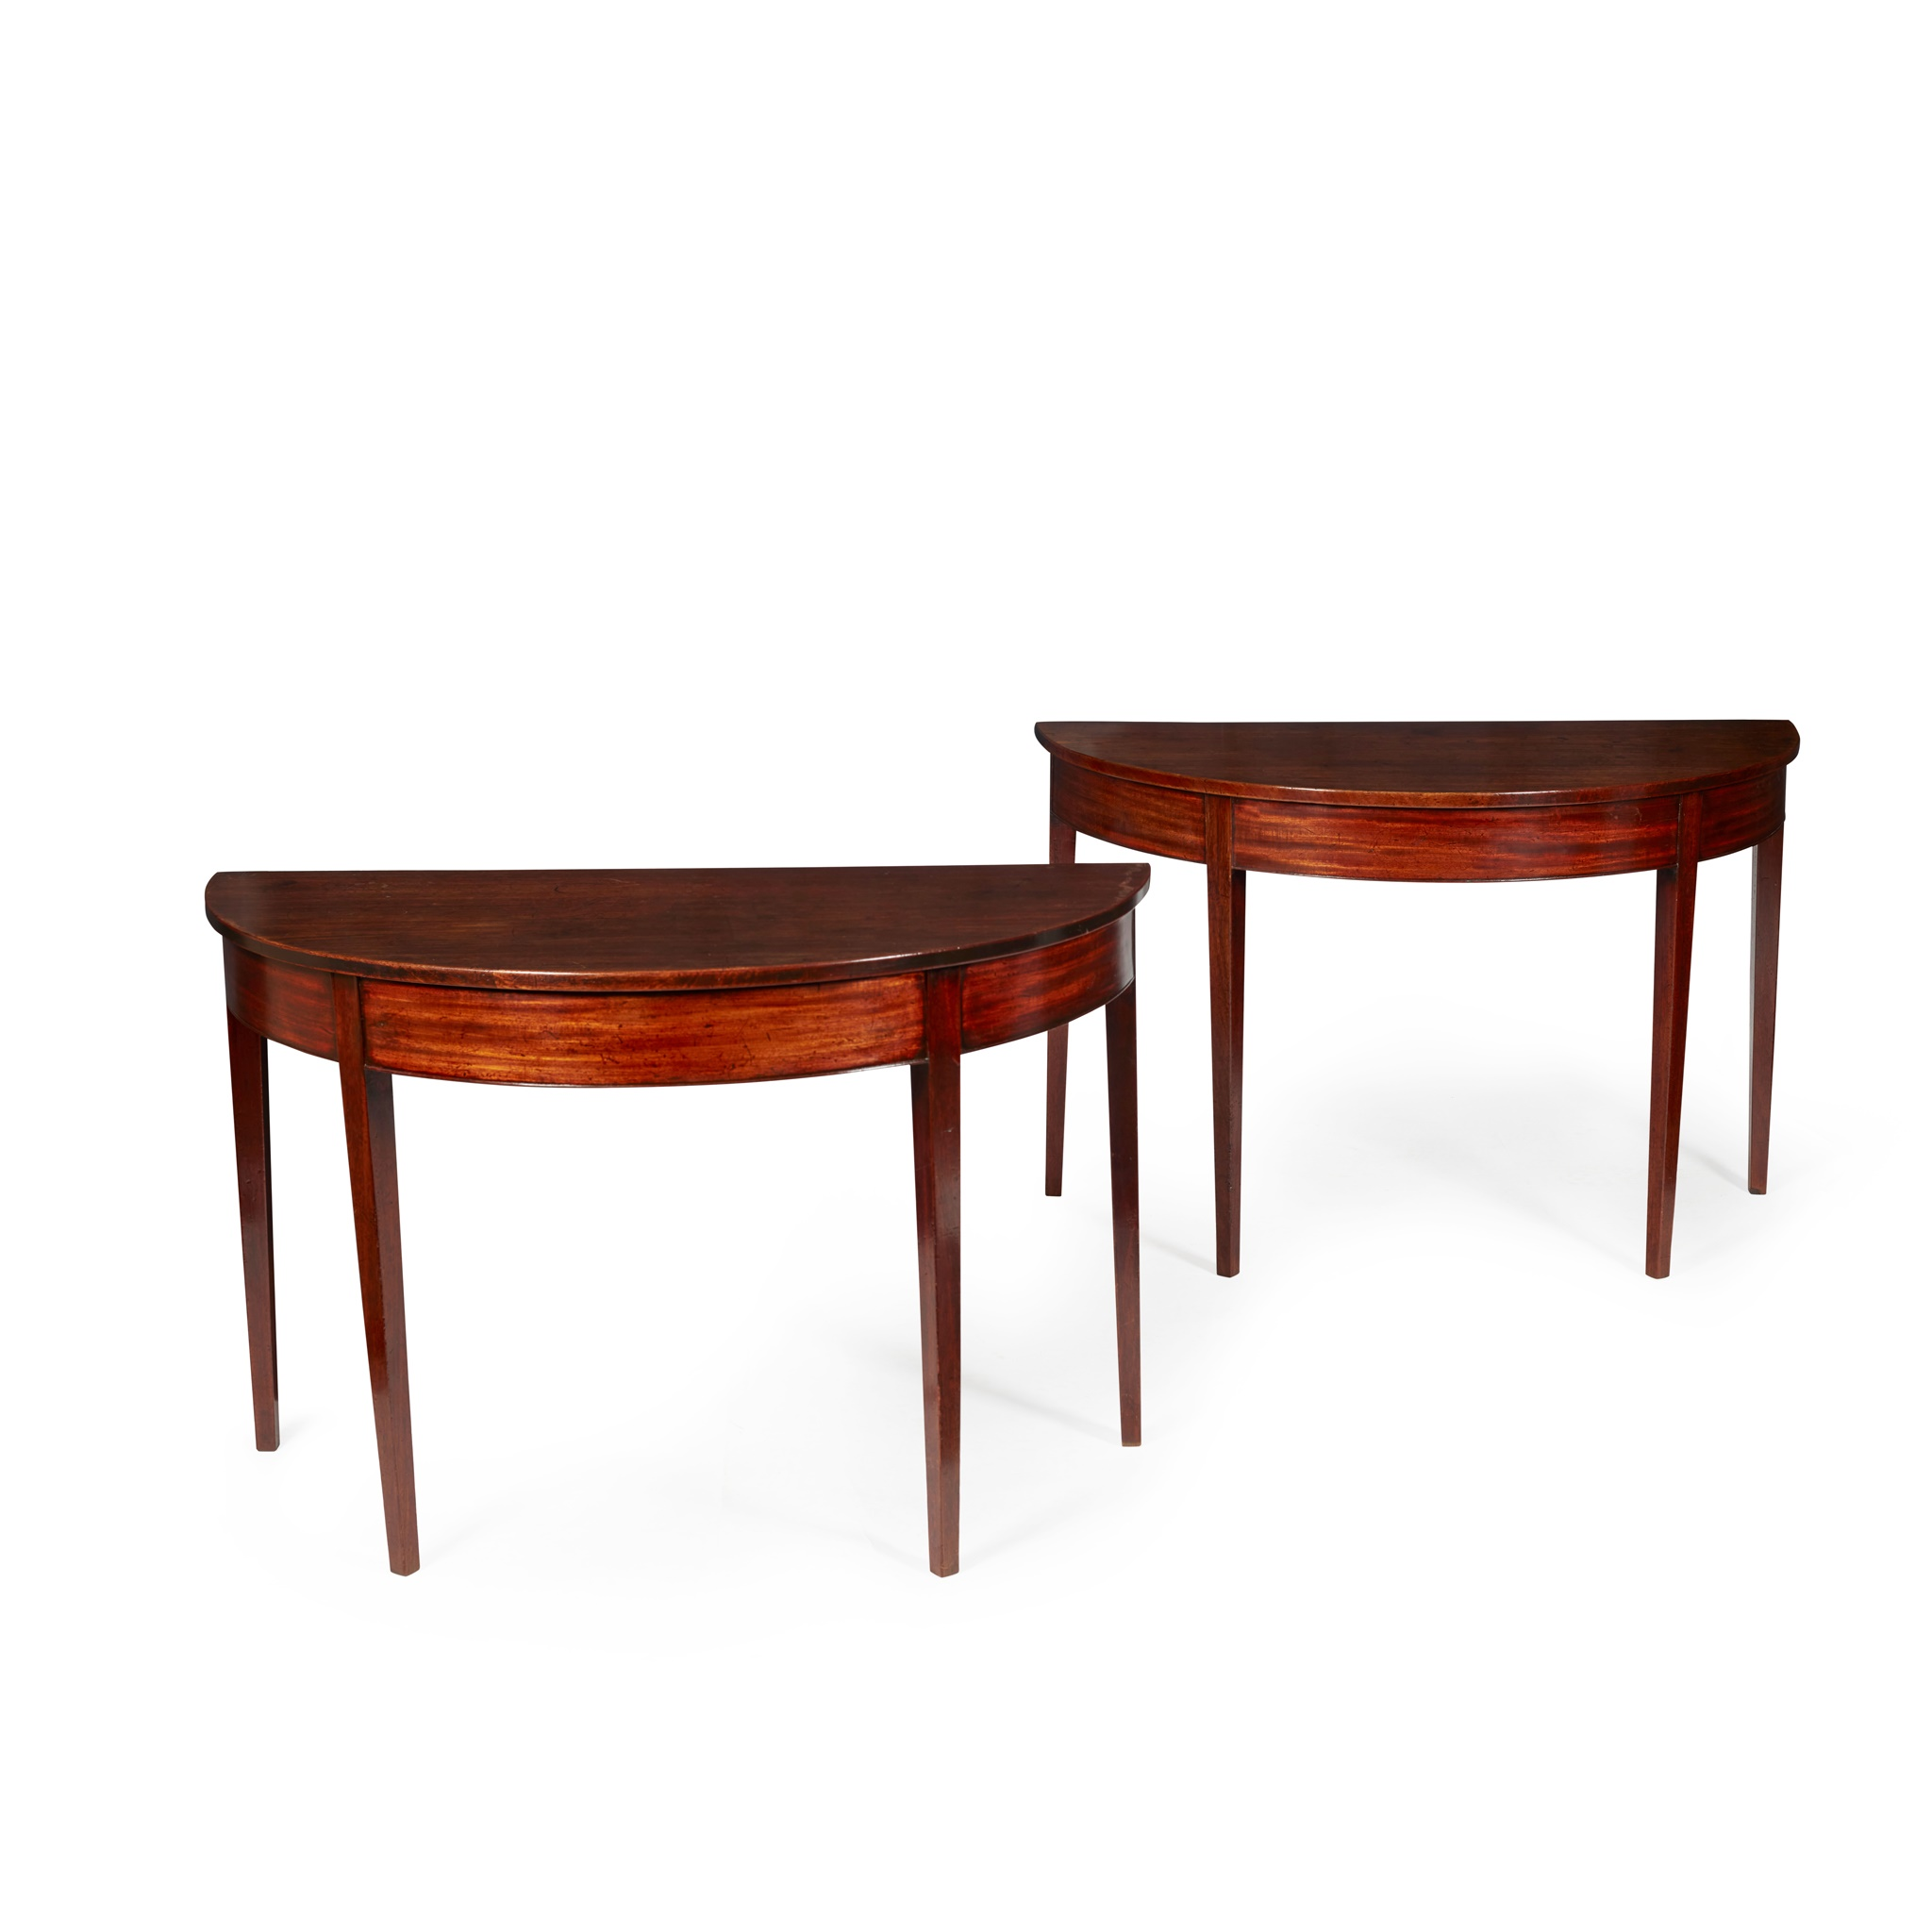 PAIR OF GEORGE III MAHOGANY DEMI-LUNE SIDE TABLES LATE 18TH CENTURY/ EARLY 19TH CENTURY